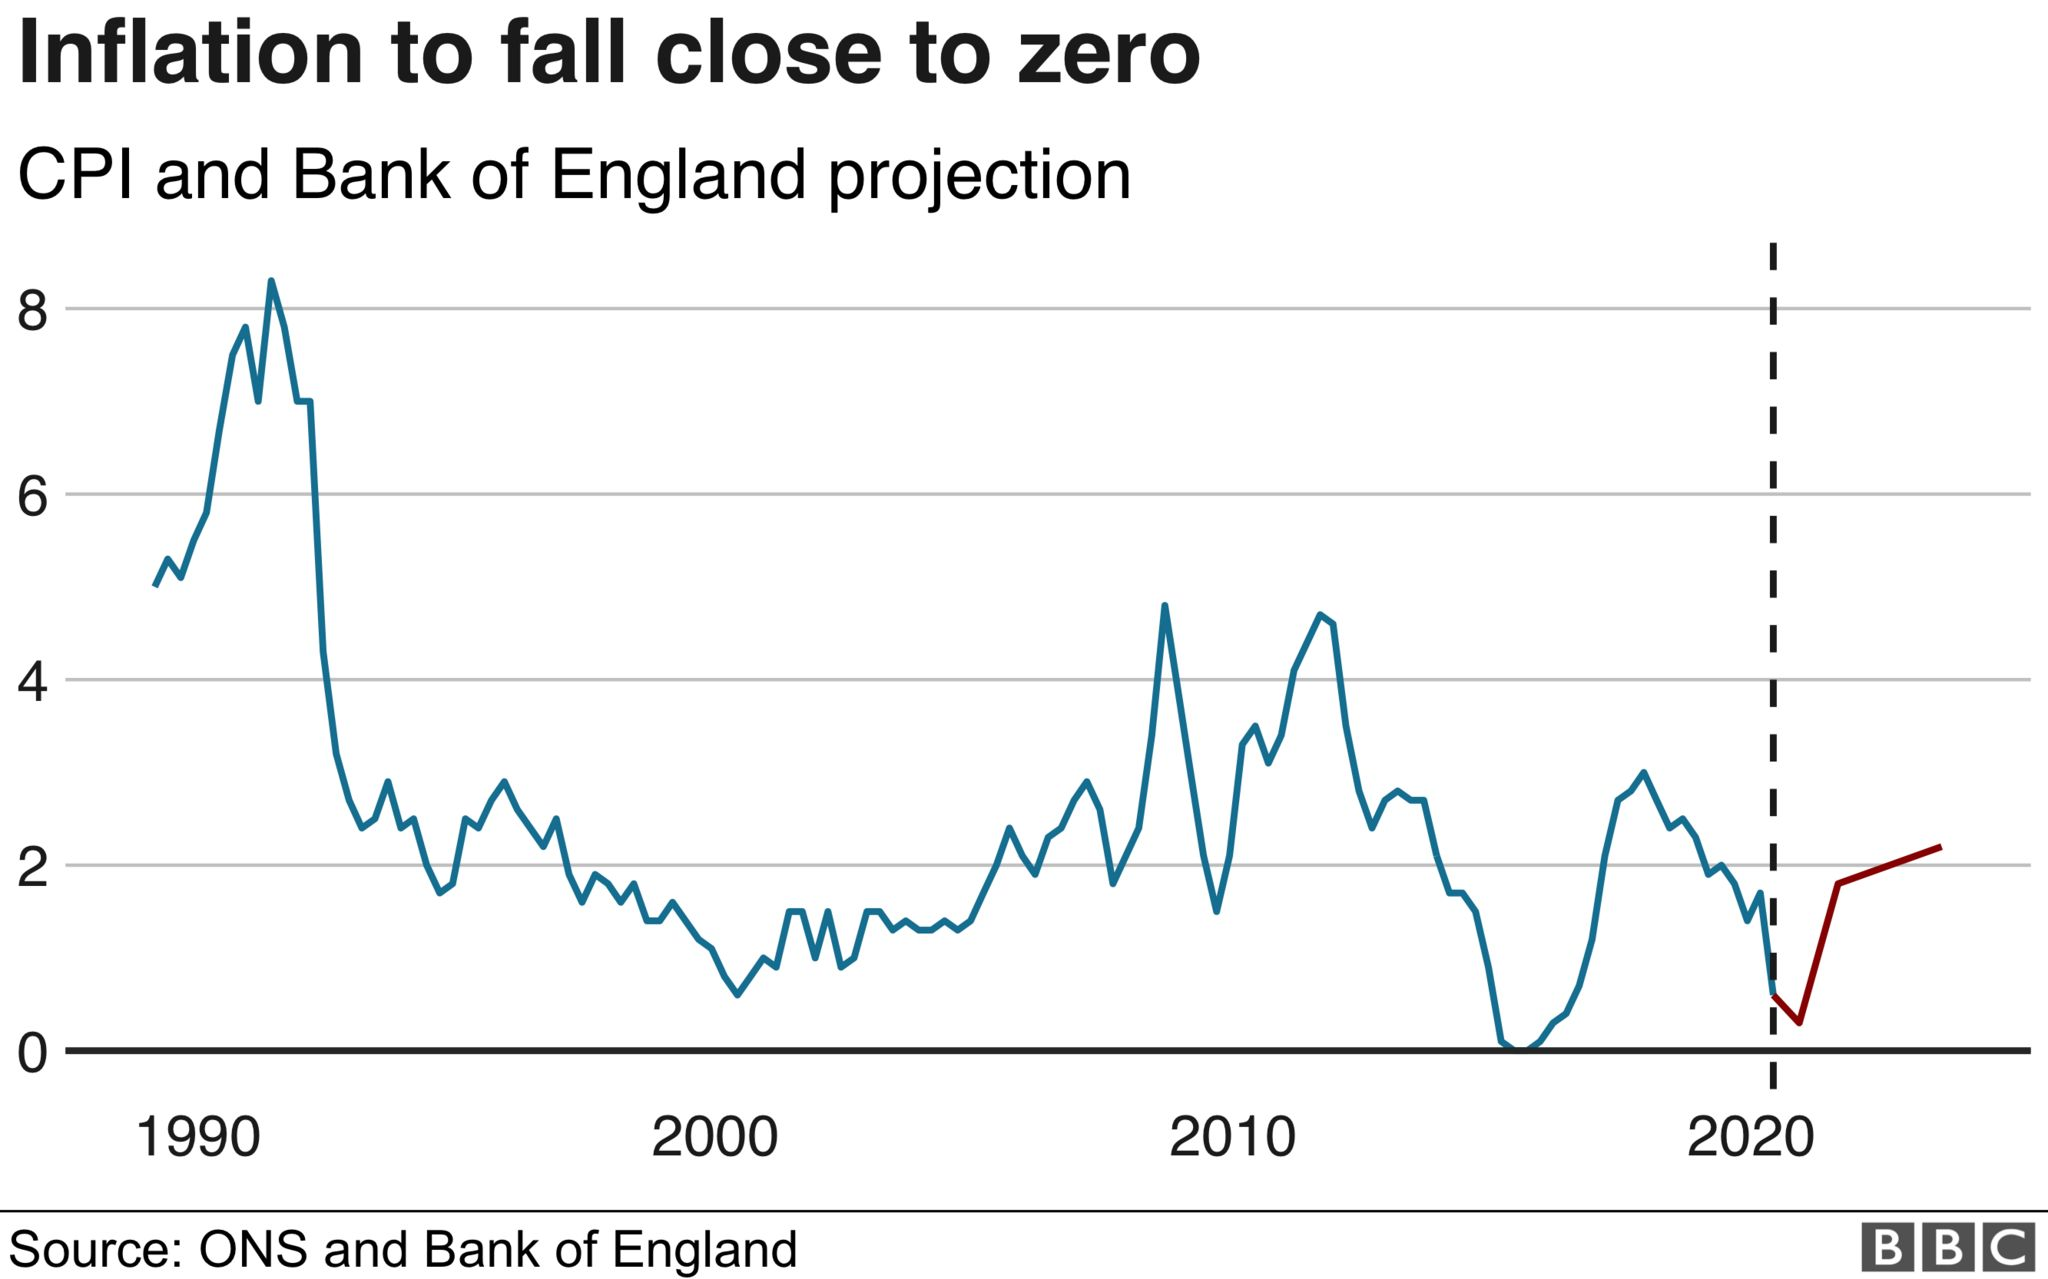 Inflation to fall close to zero - chart